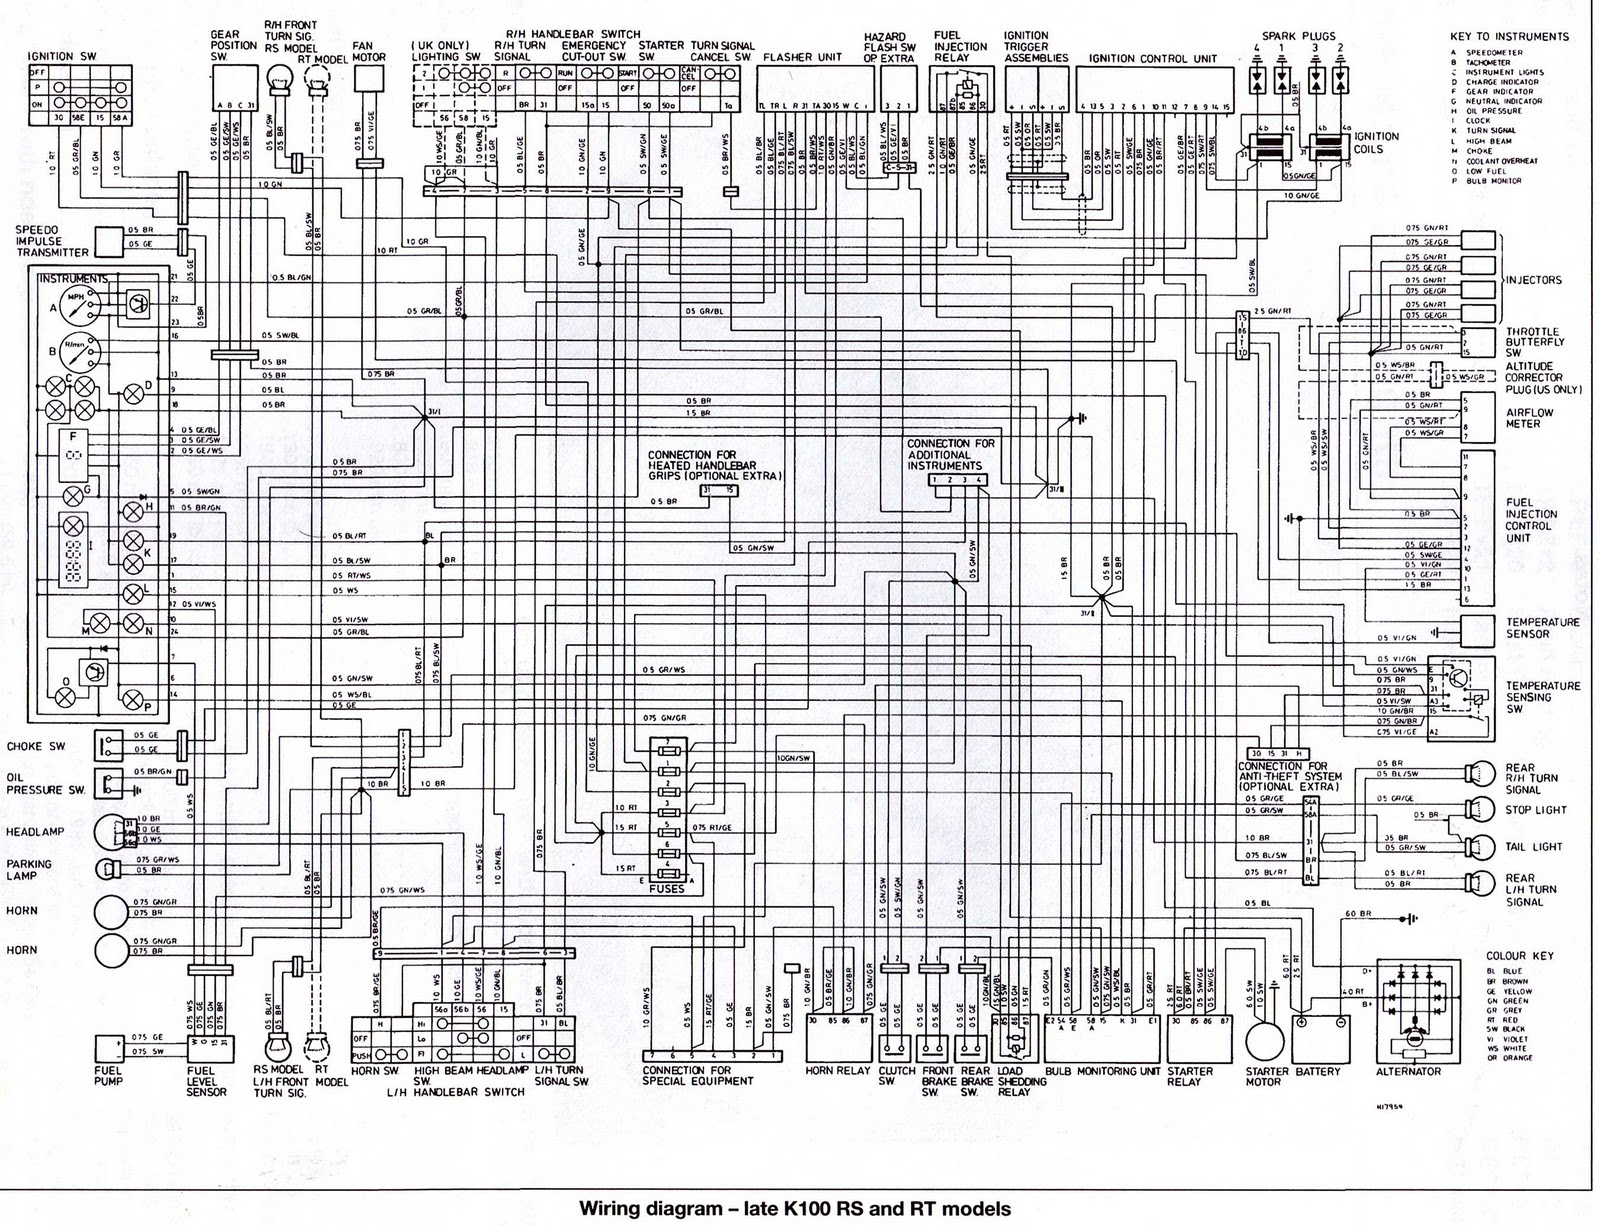 35mm jack wiring diagram may 2011 [ 1600 x 1225 Pixel ]